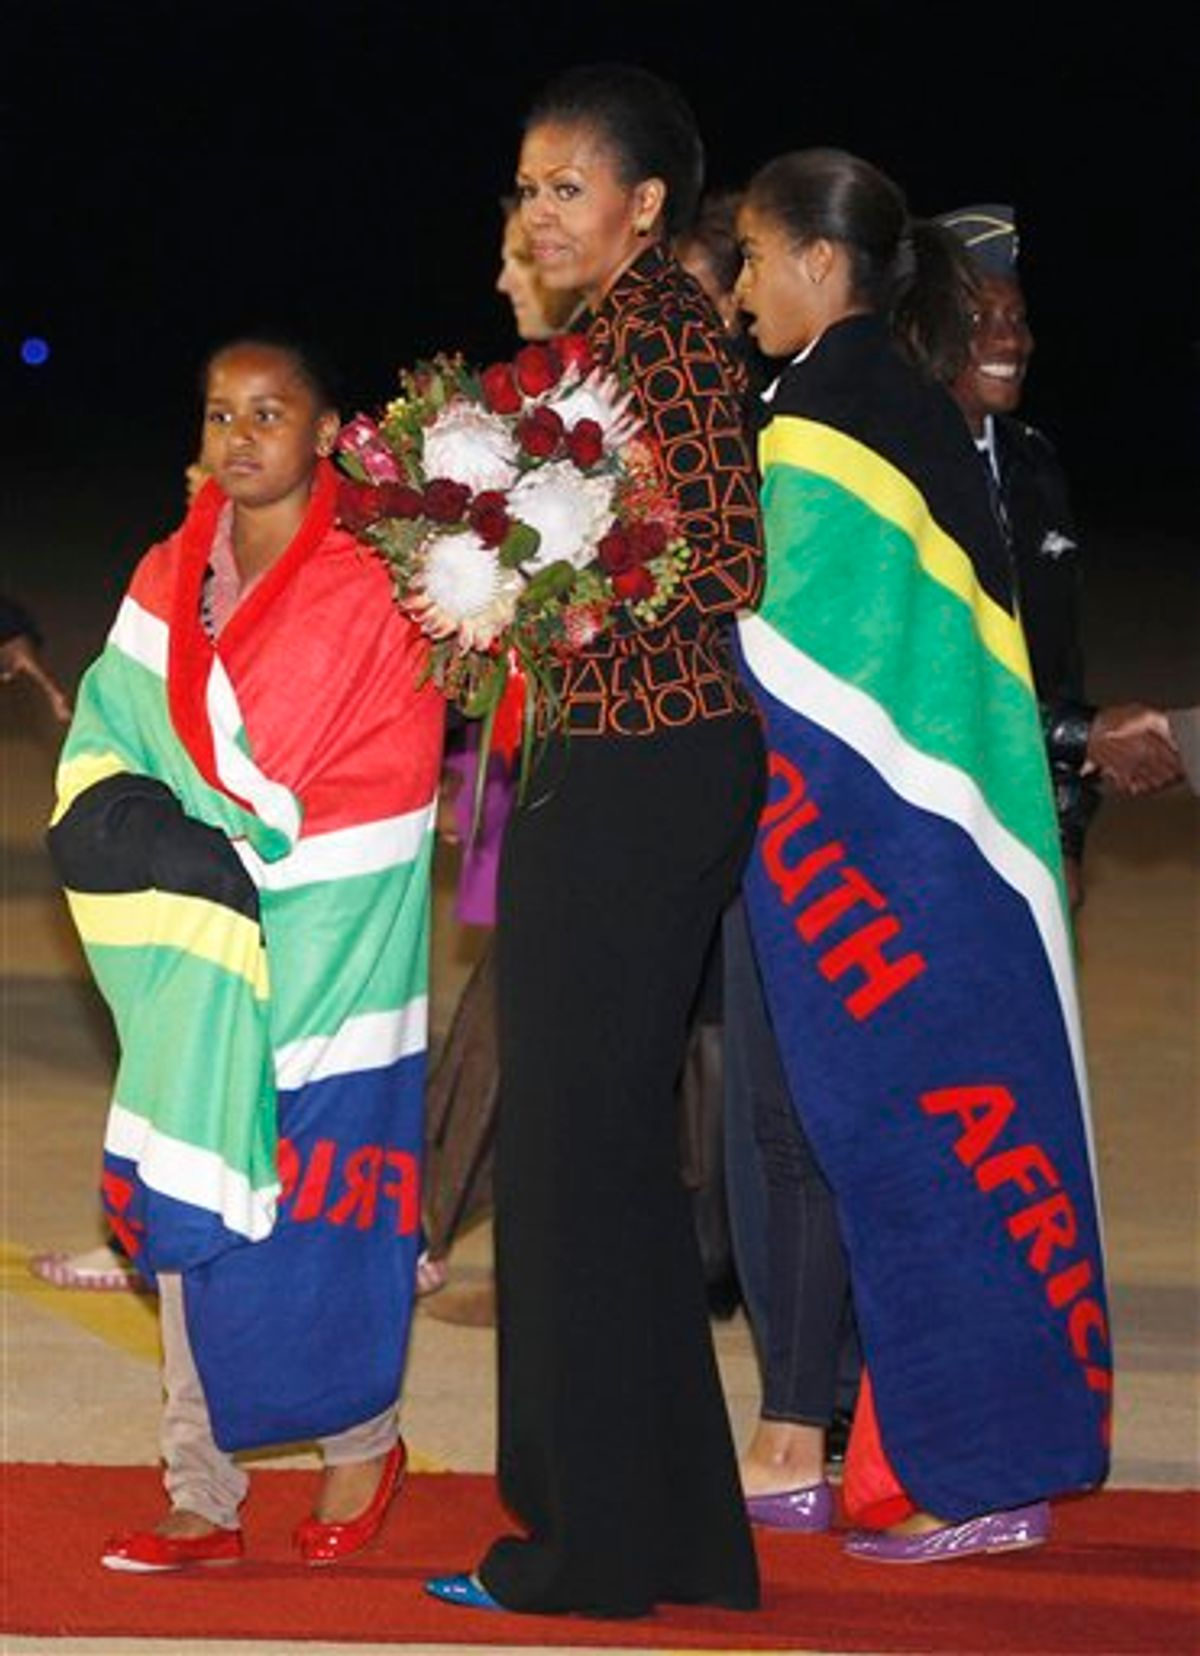 First lady Michelle Obama holds a bouquet of flowers, and daughters Malia, right, and Sasha, are draped in blankets given to them upon landing in Pretoria, en route to Johannesburg, South Africa, Monday, June 20, 2011, as they begin their week long trip to Africa. (AP Photo/Charles Dharapak, Pool)  (AP)